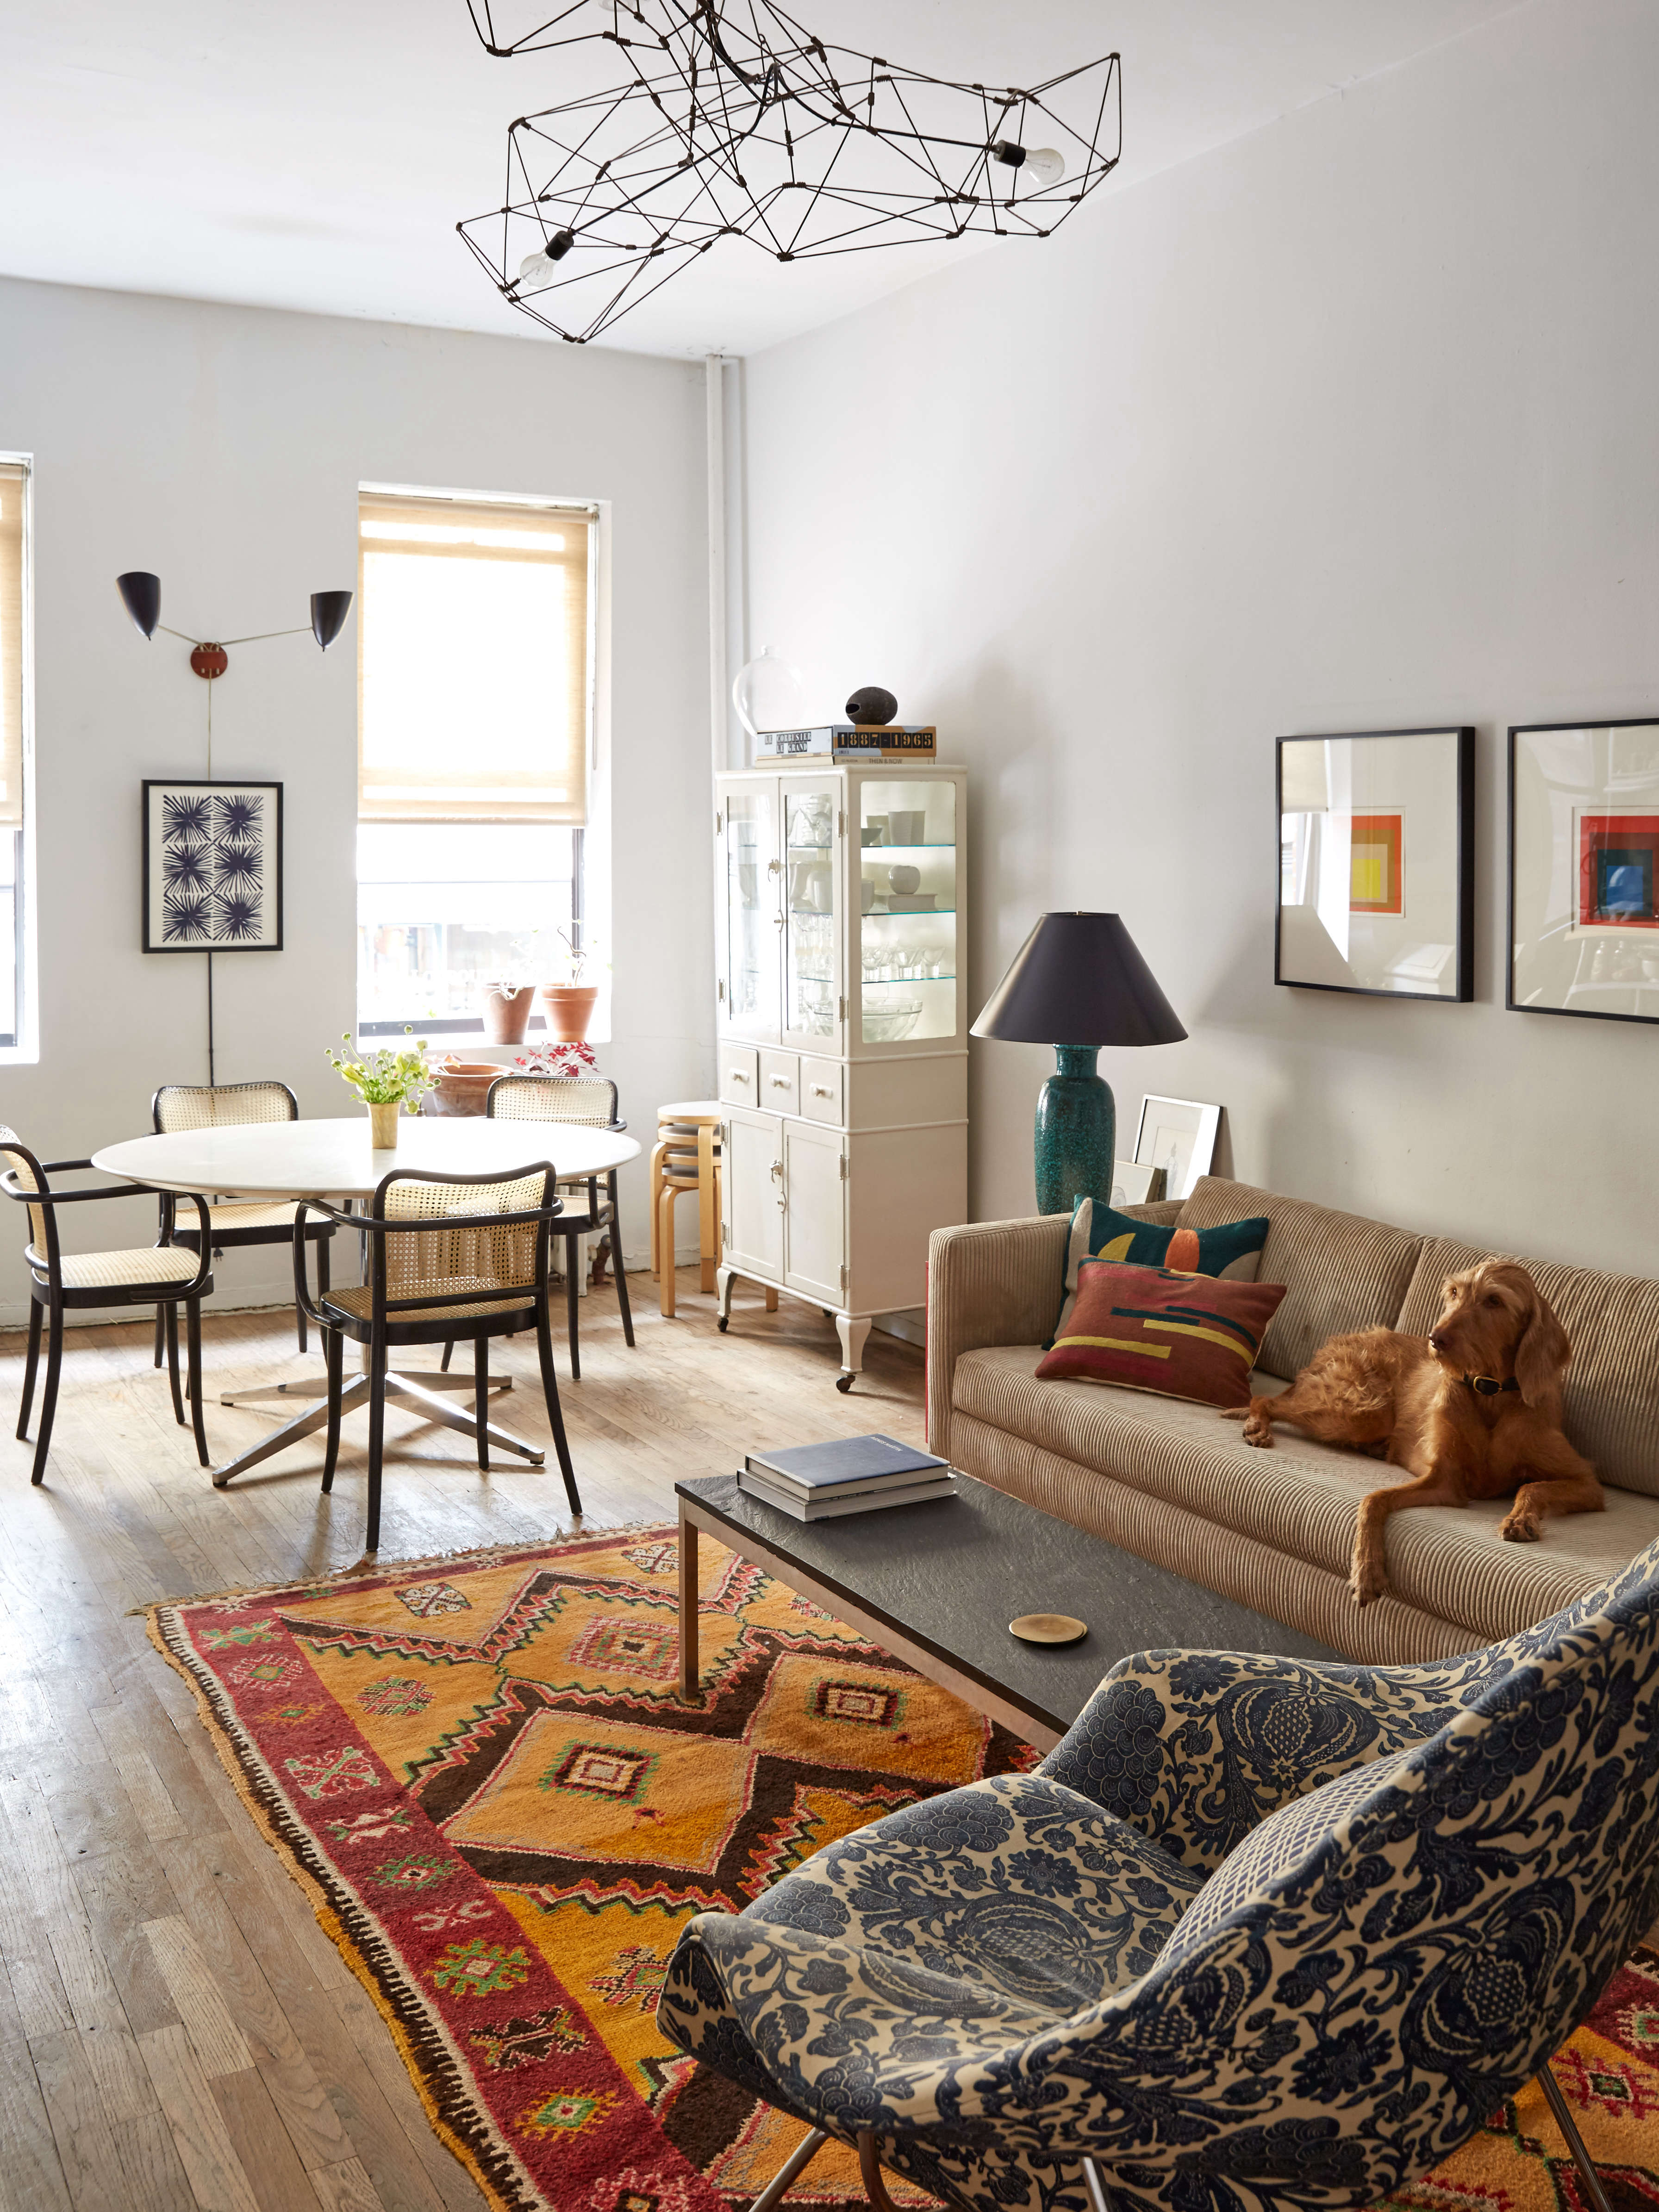 Small-Space Solutions: 17 Affordable Tips from an NYC Creative ...